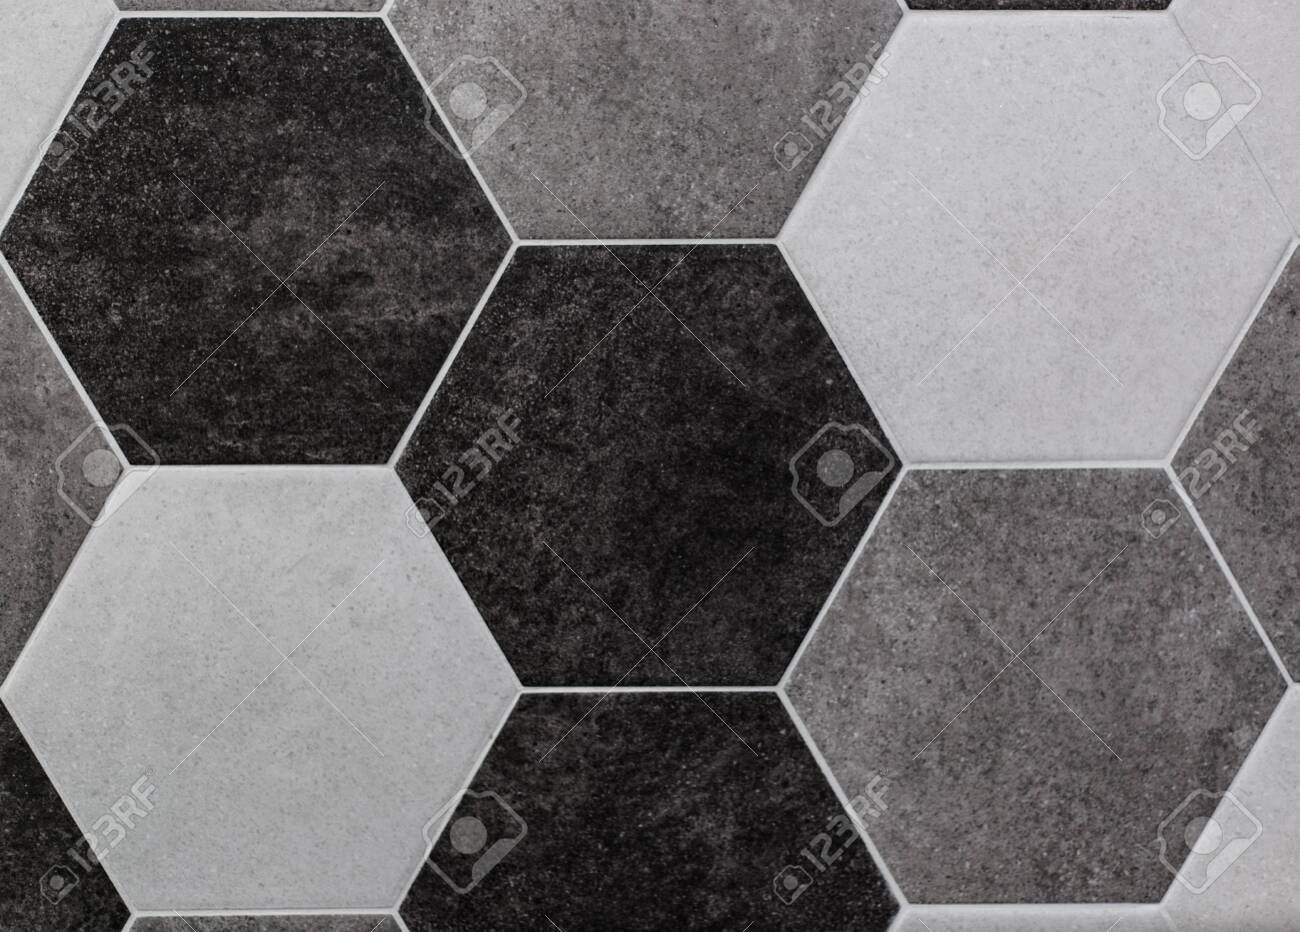 large hexagonal background concrete structure shades of gray